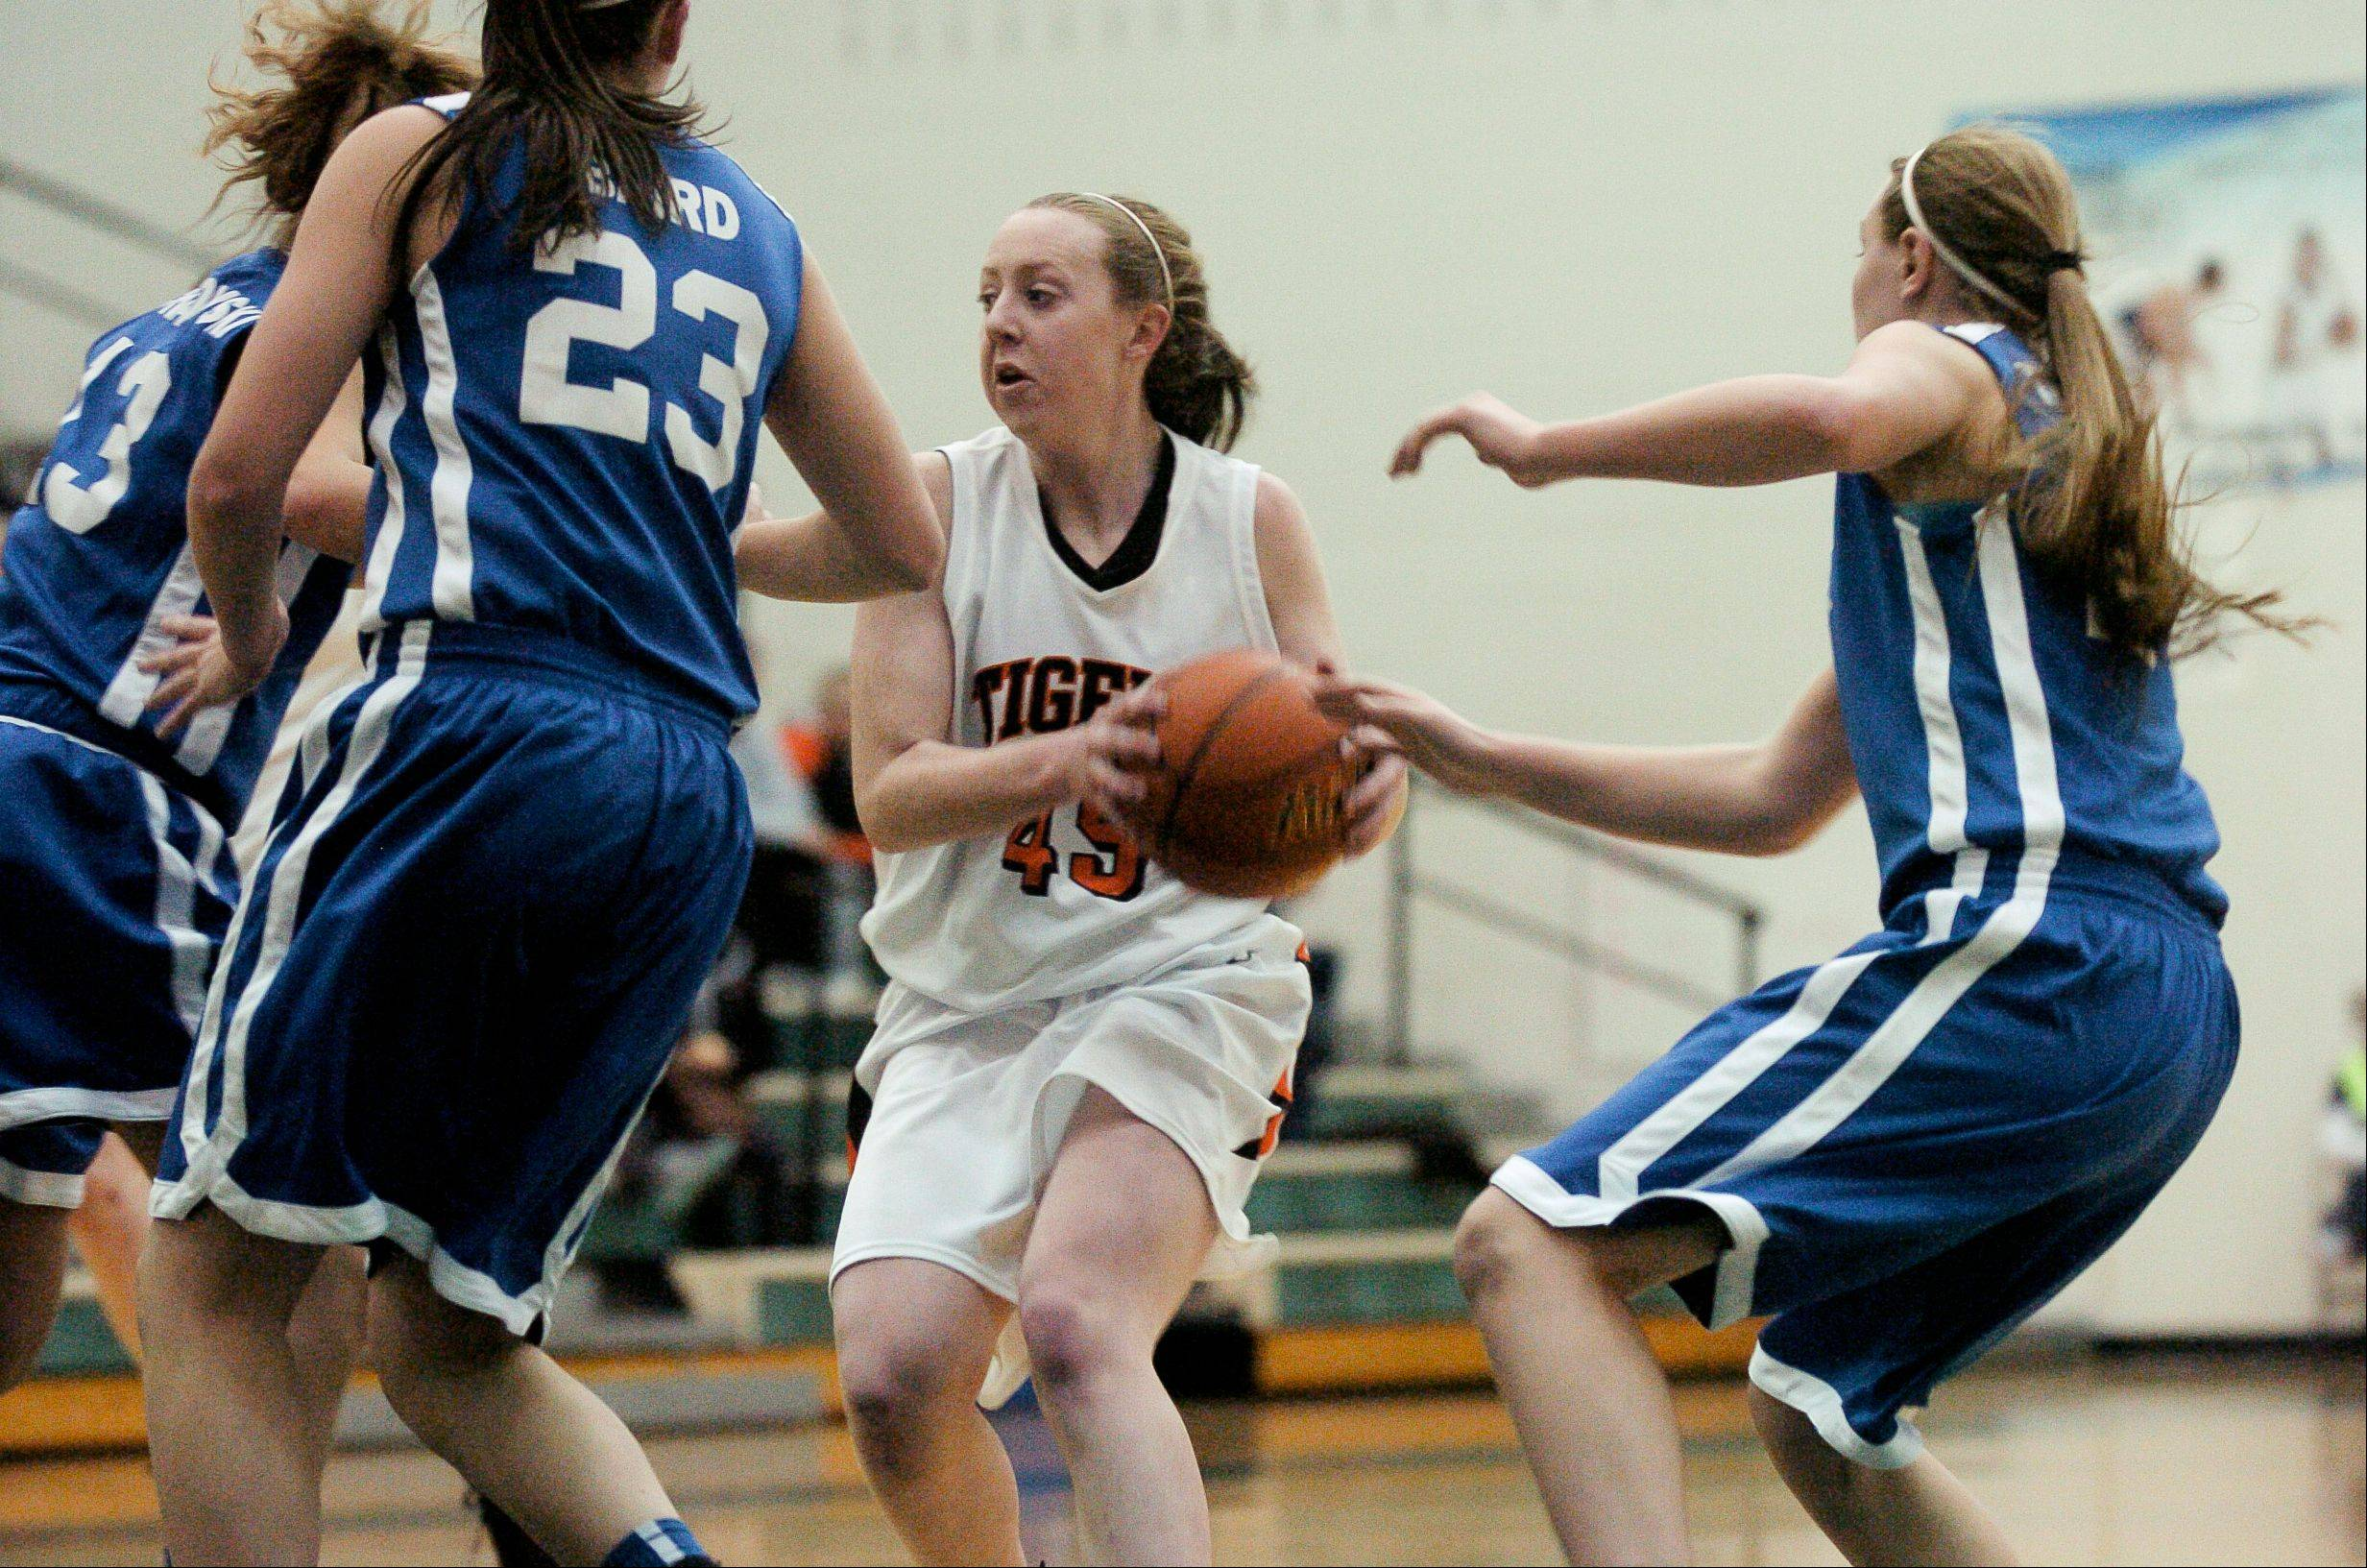 Meghan Waldron of Wheaton Warrenville South heads to the basket against Wheaton North.